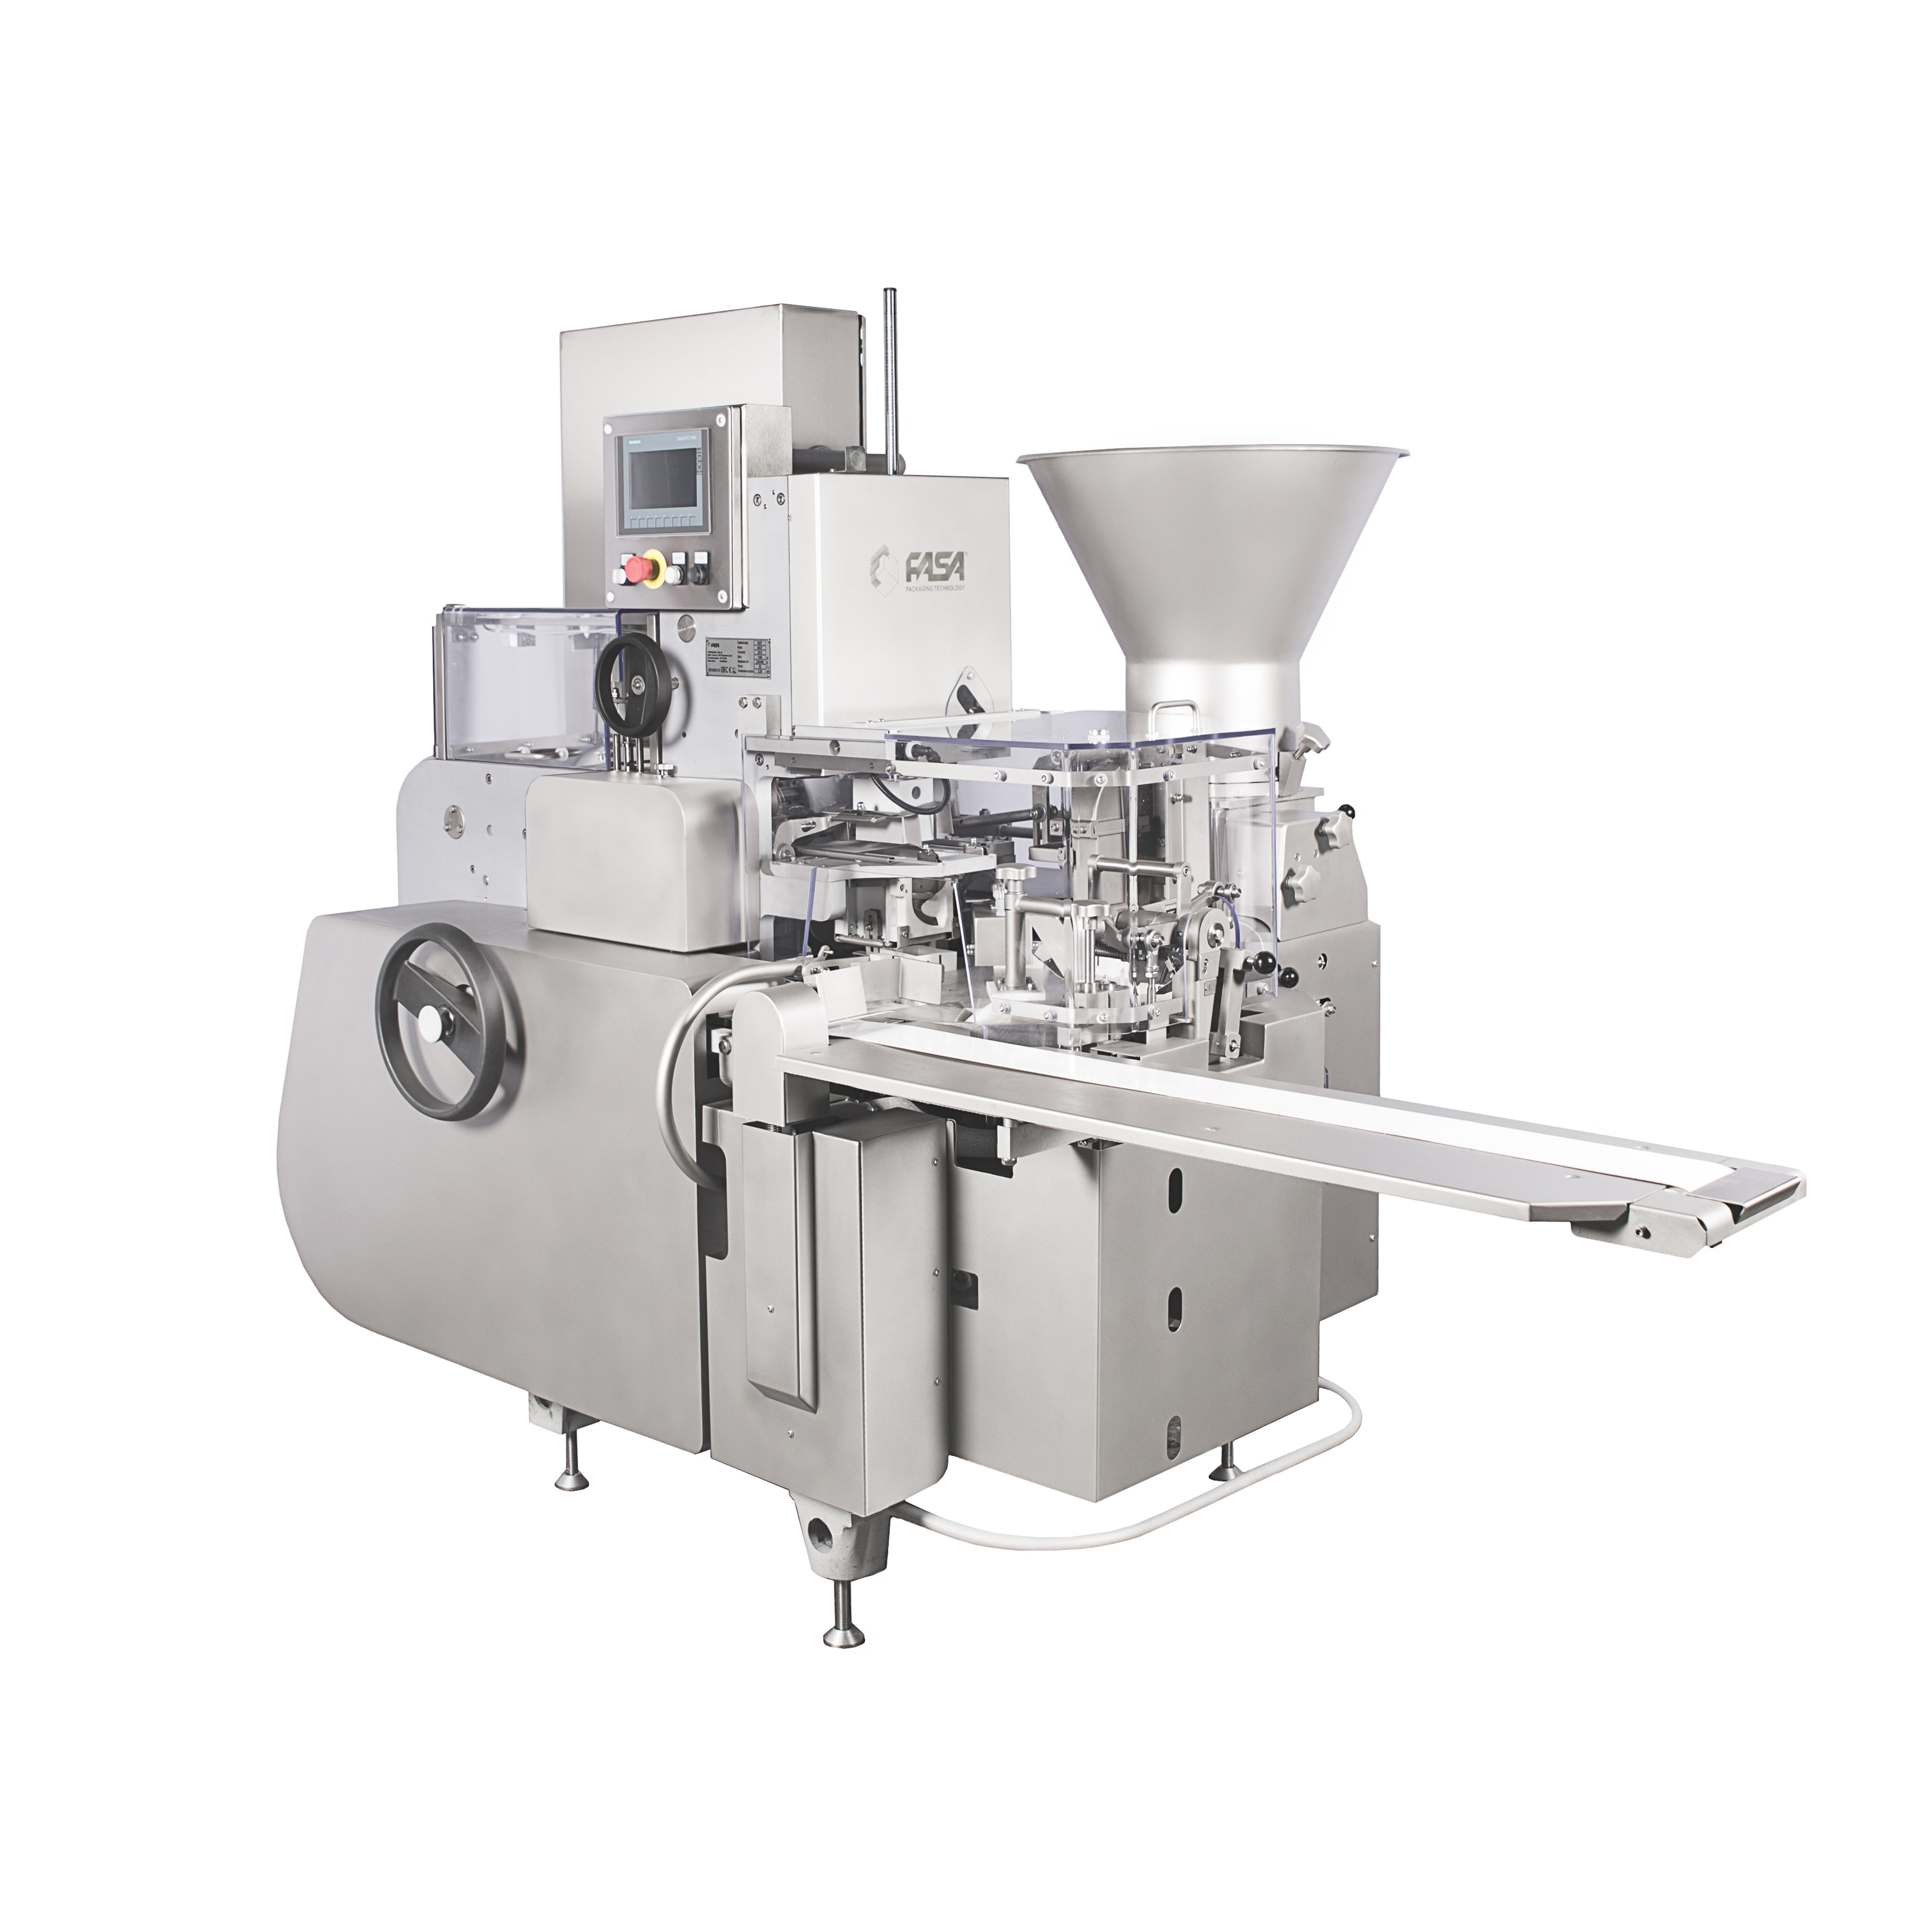 Curd Filling and Wrapping Machine - AR2T